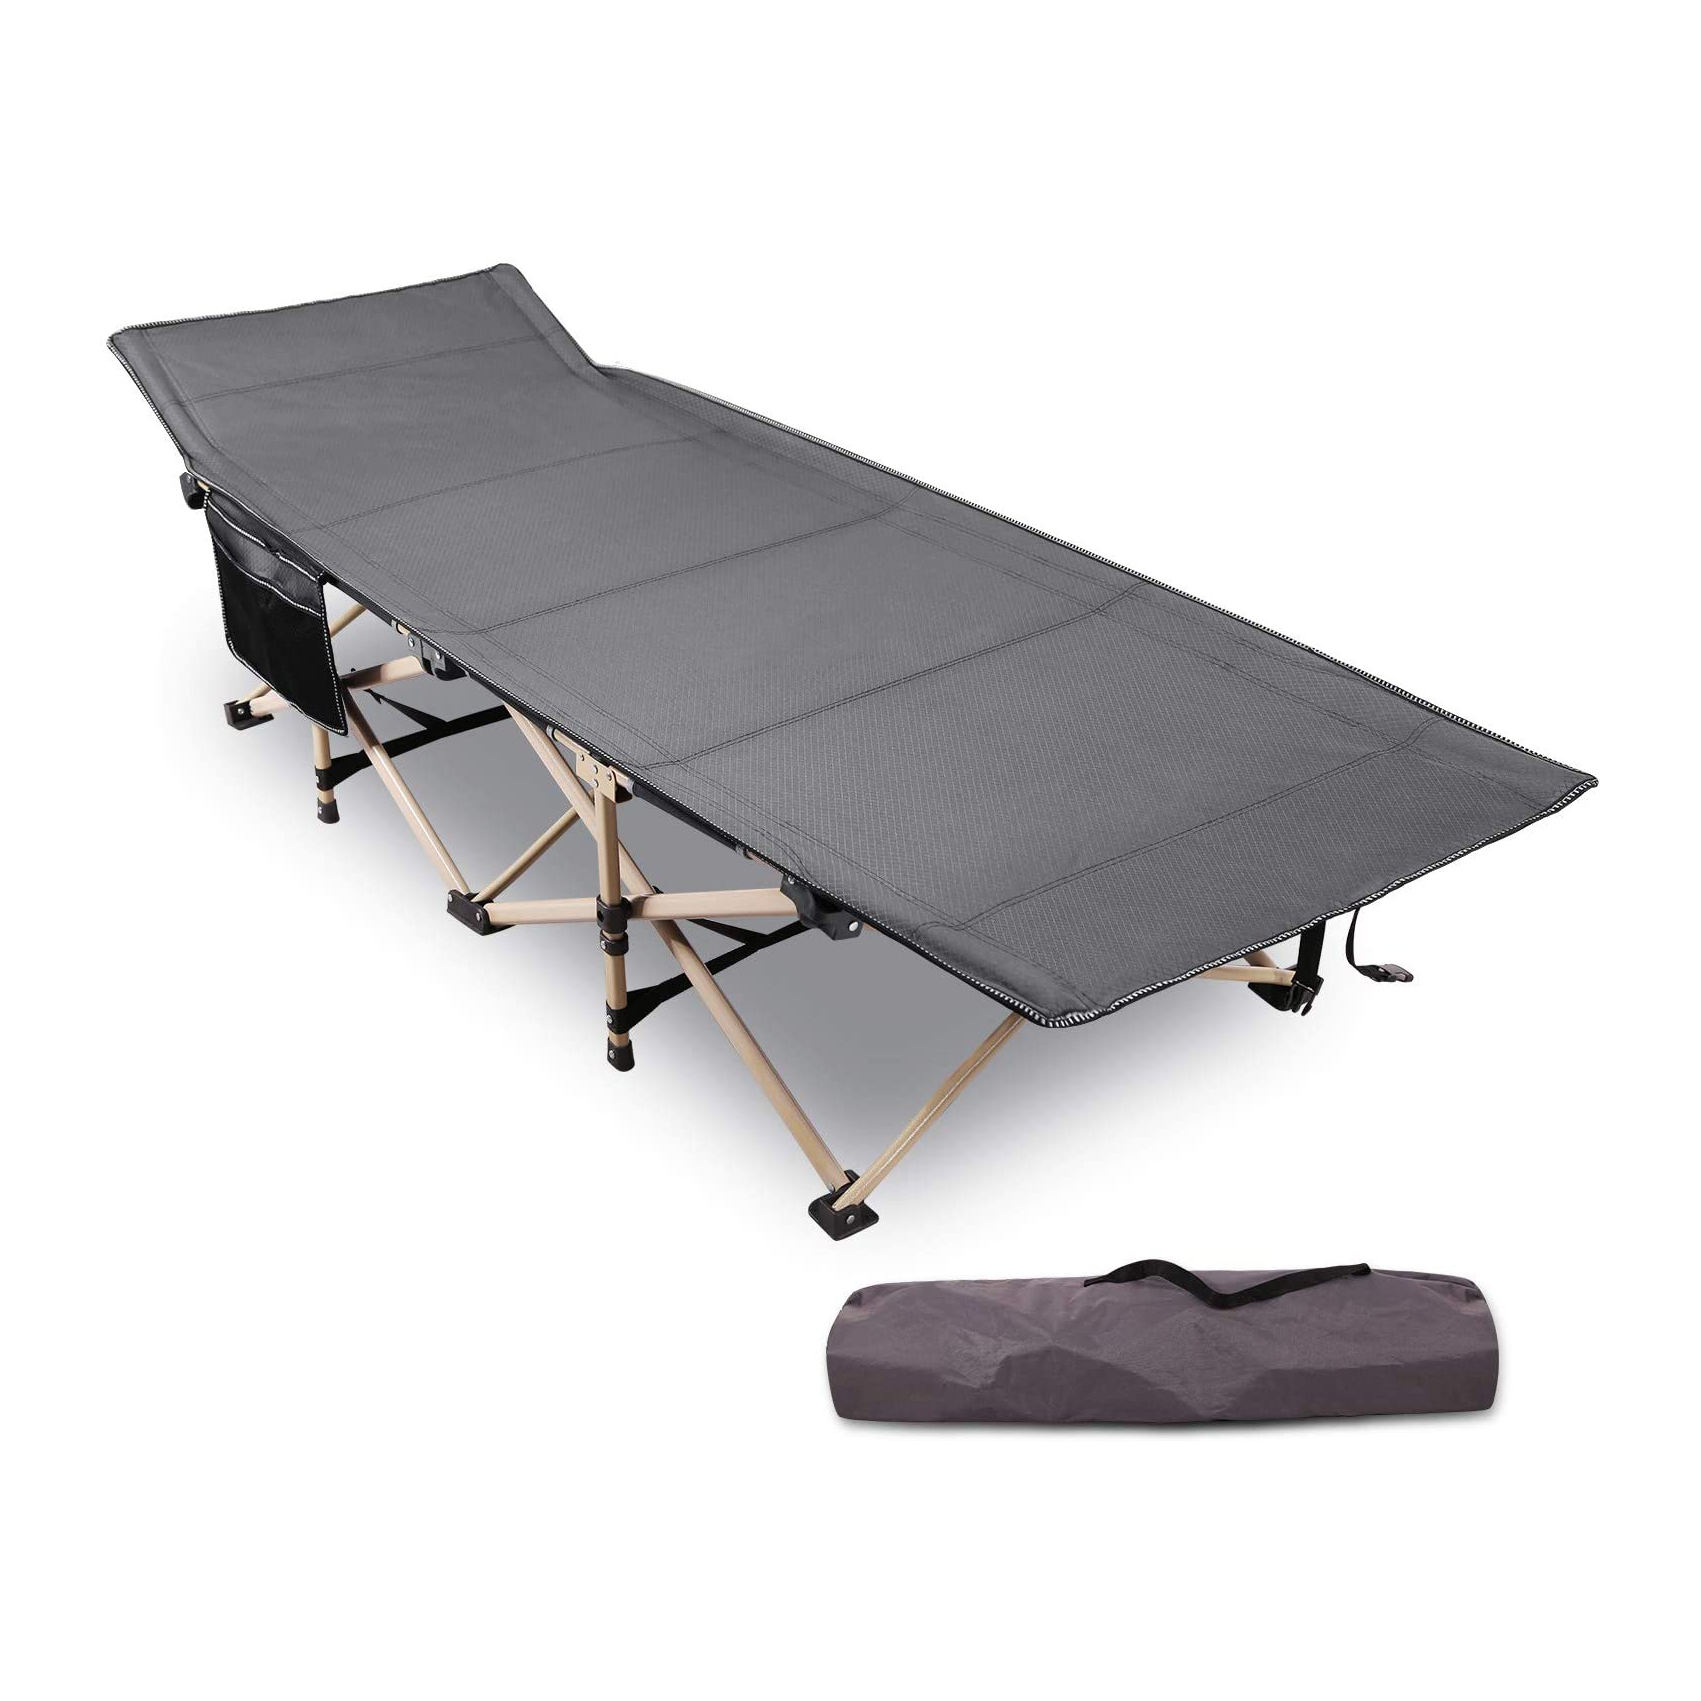 New design outdoor folding cot, potable camping folding bed